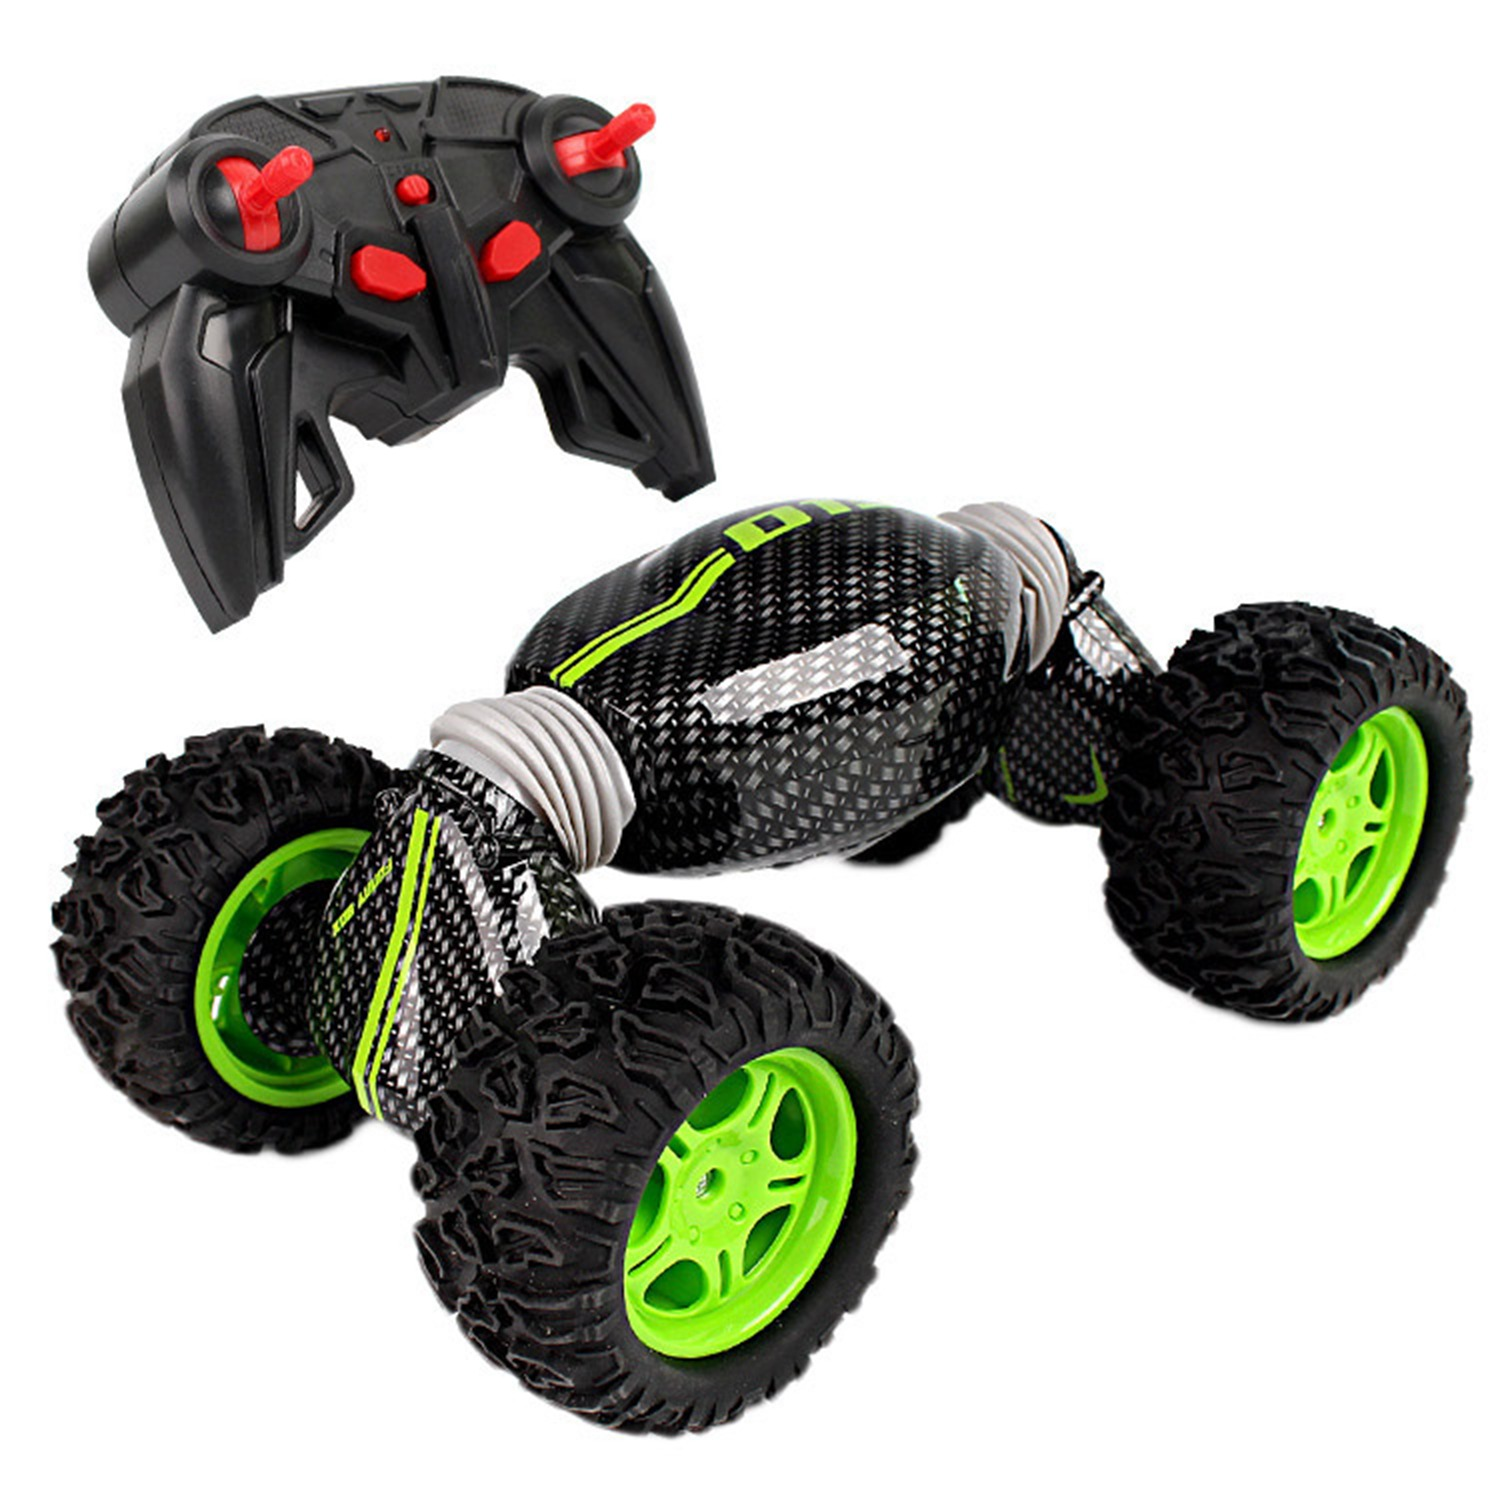 1 12 4WD RC Car Creative Off Road Vehicle 2 4G One Key Transformation Stunt Car